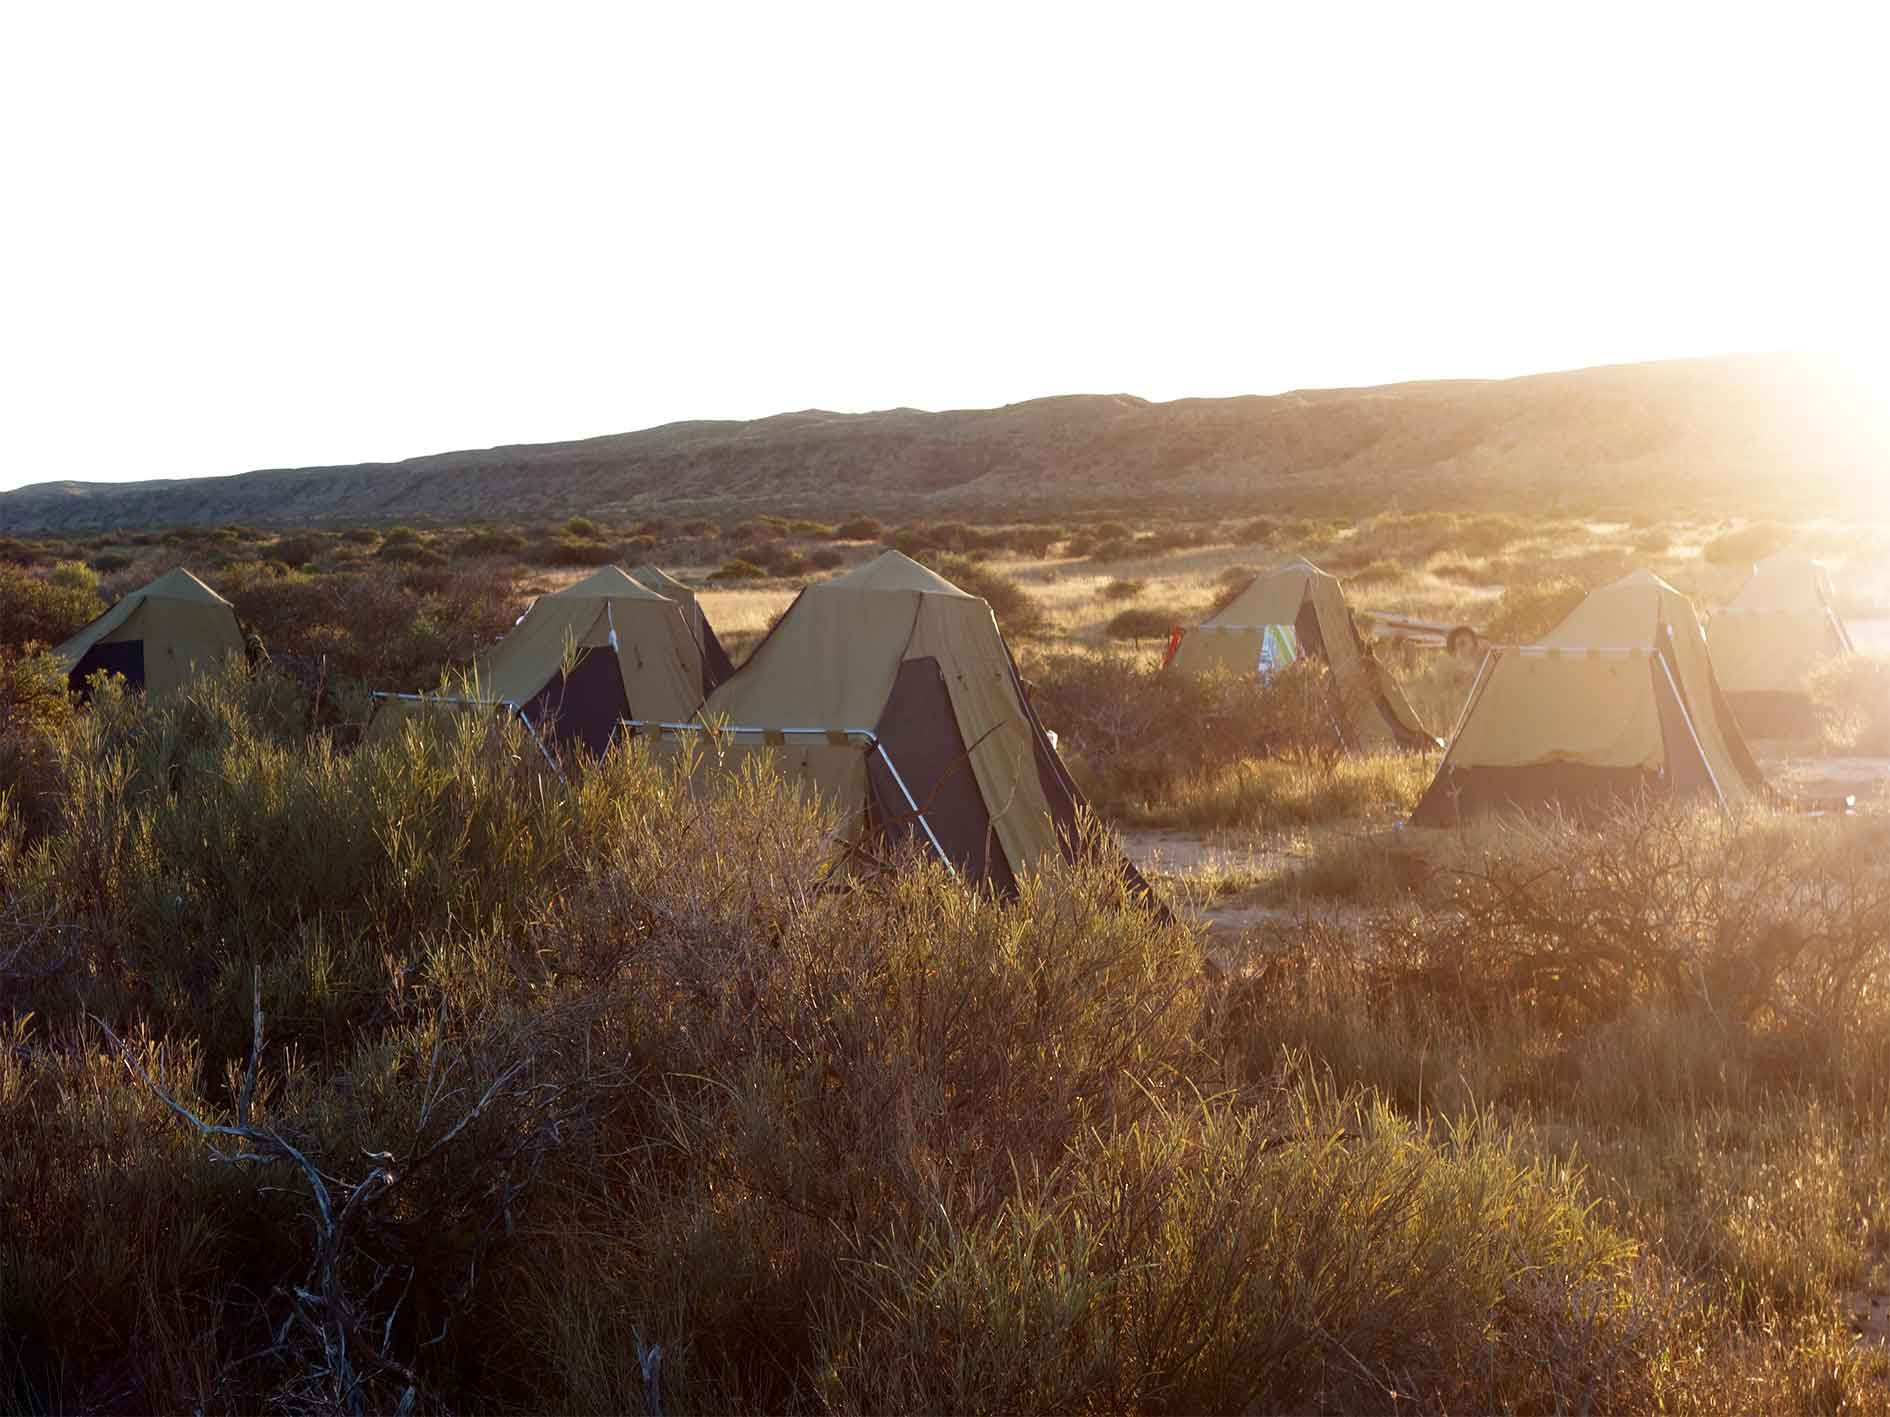 Comfortable camping base camp tents at sunset in Cape Range National Park on 5 day Ultimate Safari Tour sea kayaking, snorkelling, bushwalking and base camping tour